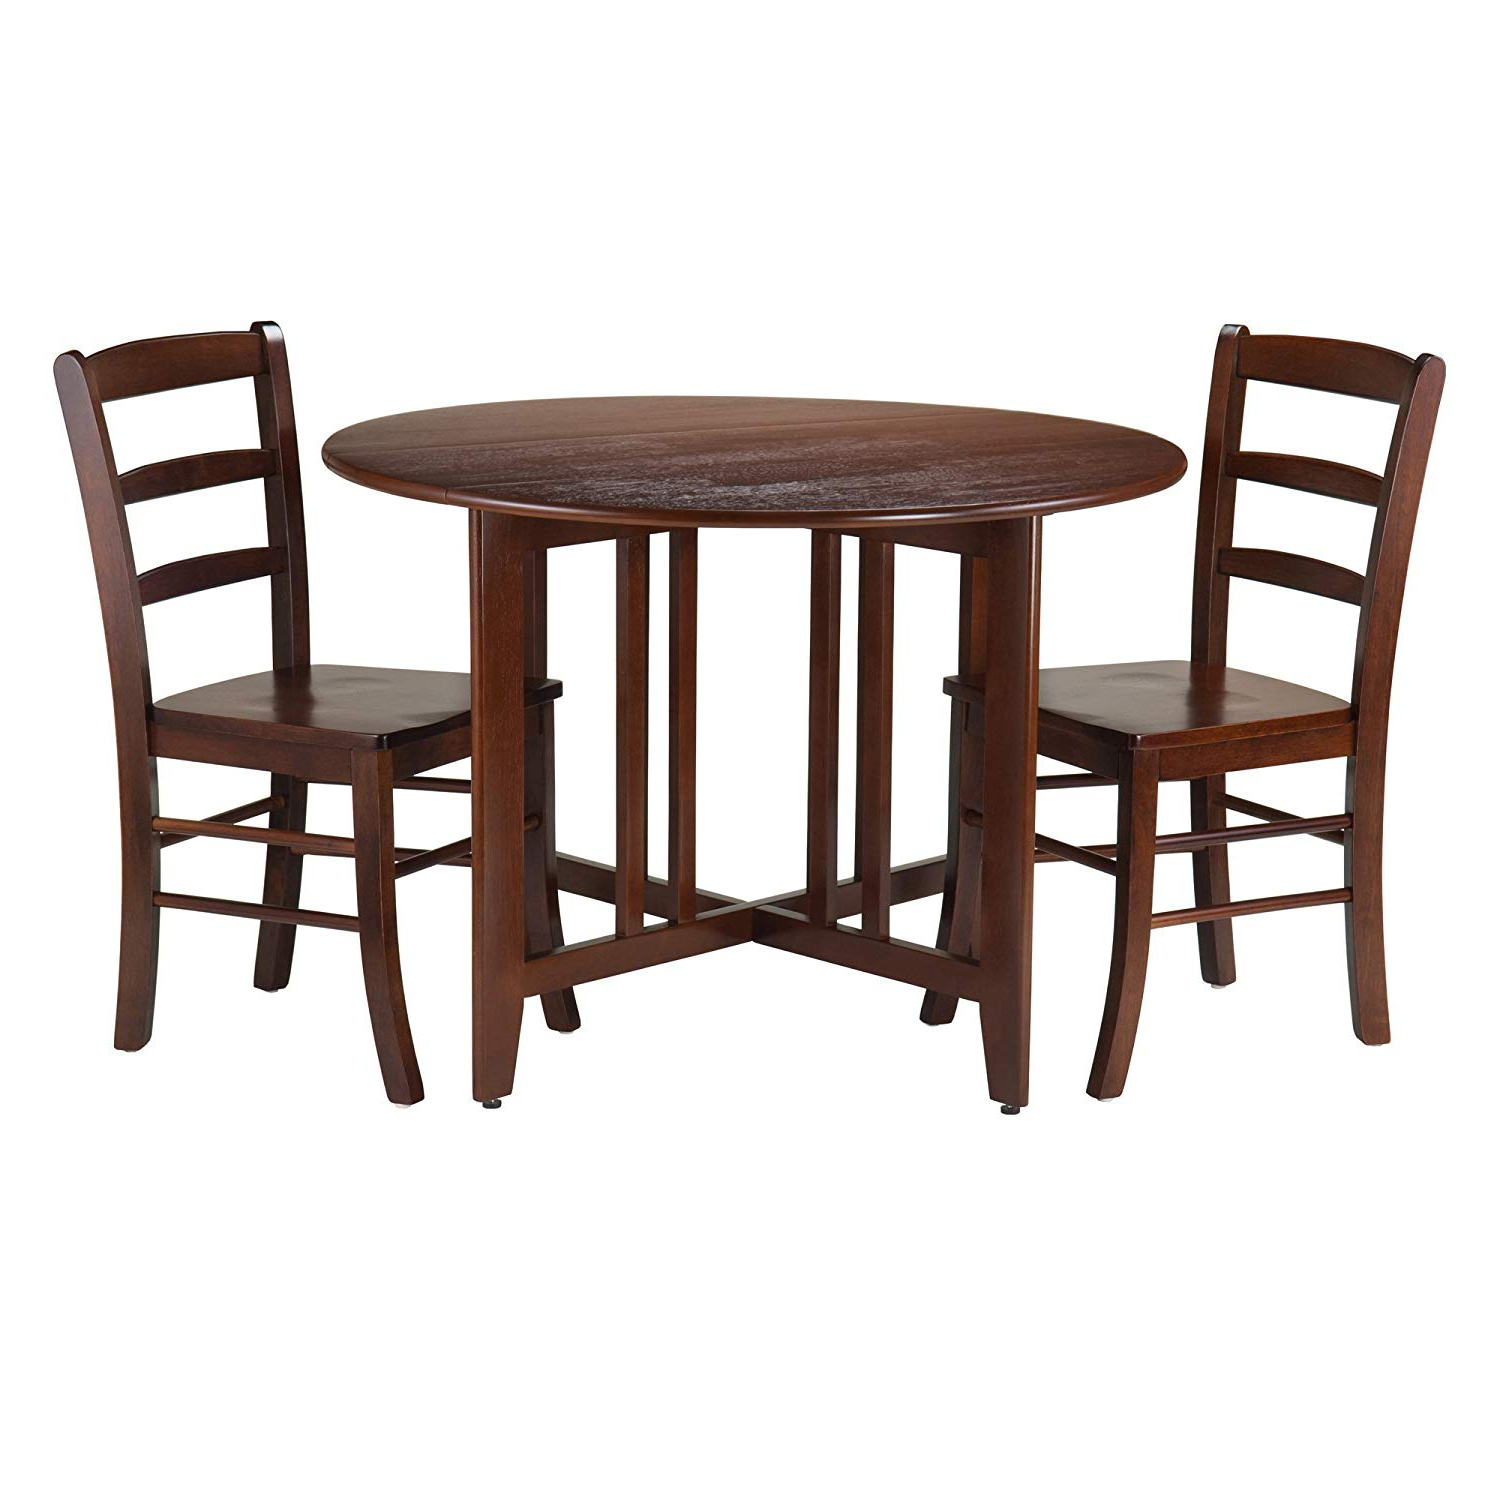 Well Liked Alamo Transitional 4 Seating Double Drop Leaf Round Casual Dining Tables With Winsome 3 Piece Alamo Round Drop Leaf Table With 2 Ladder Back Chairs, Brown (View 3 of 19)